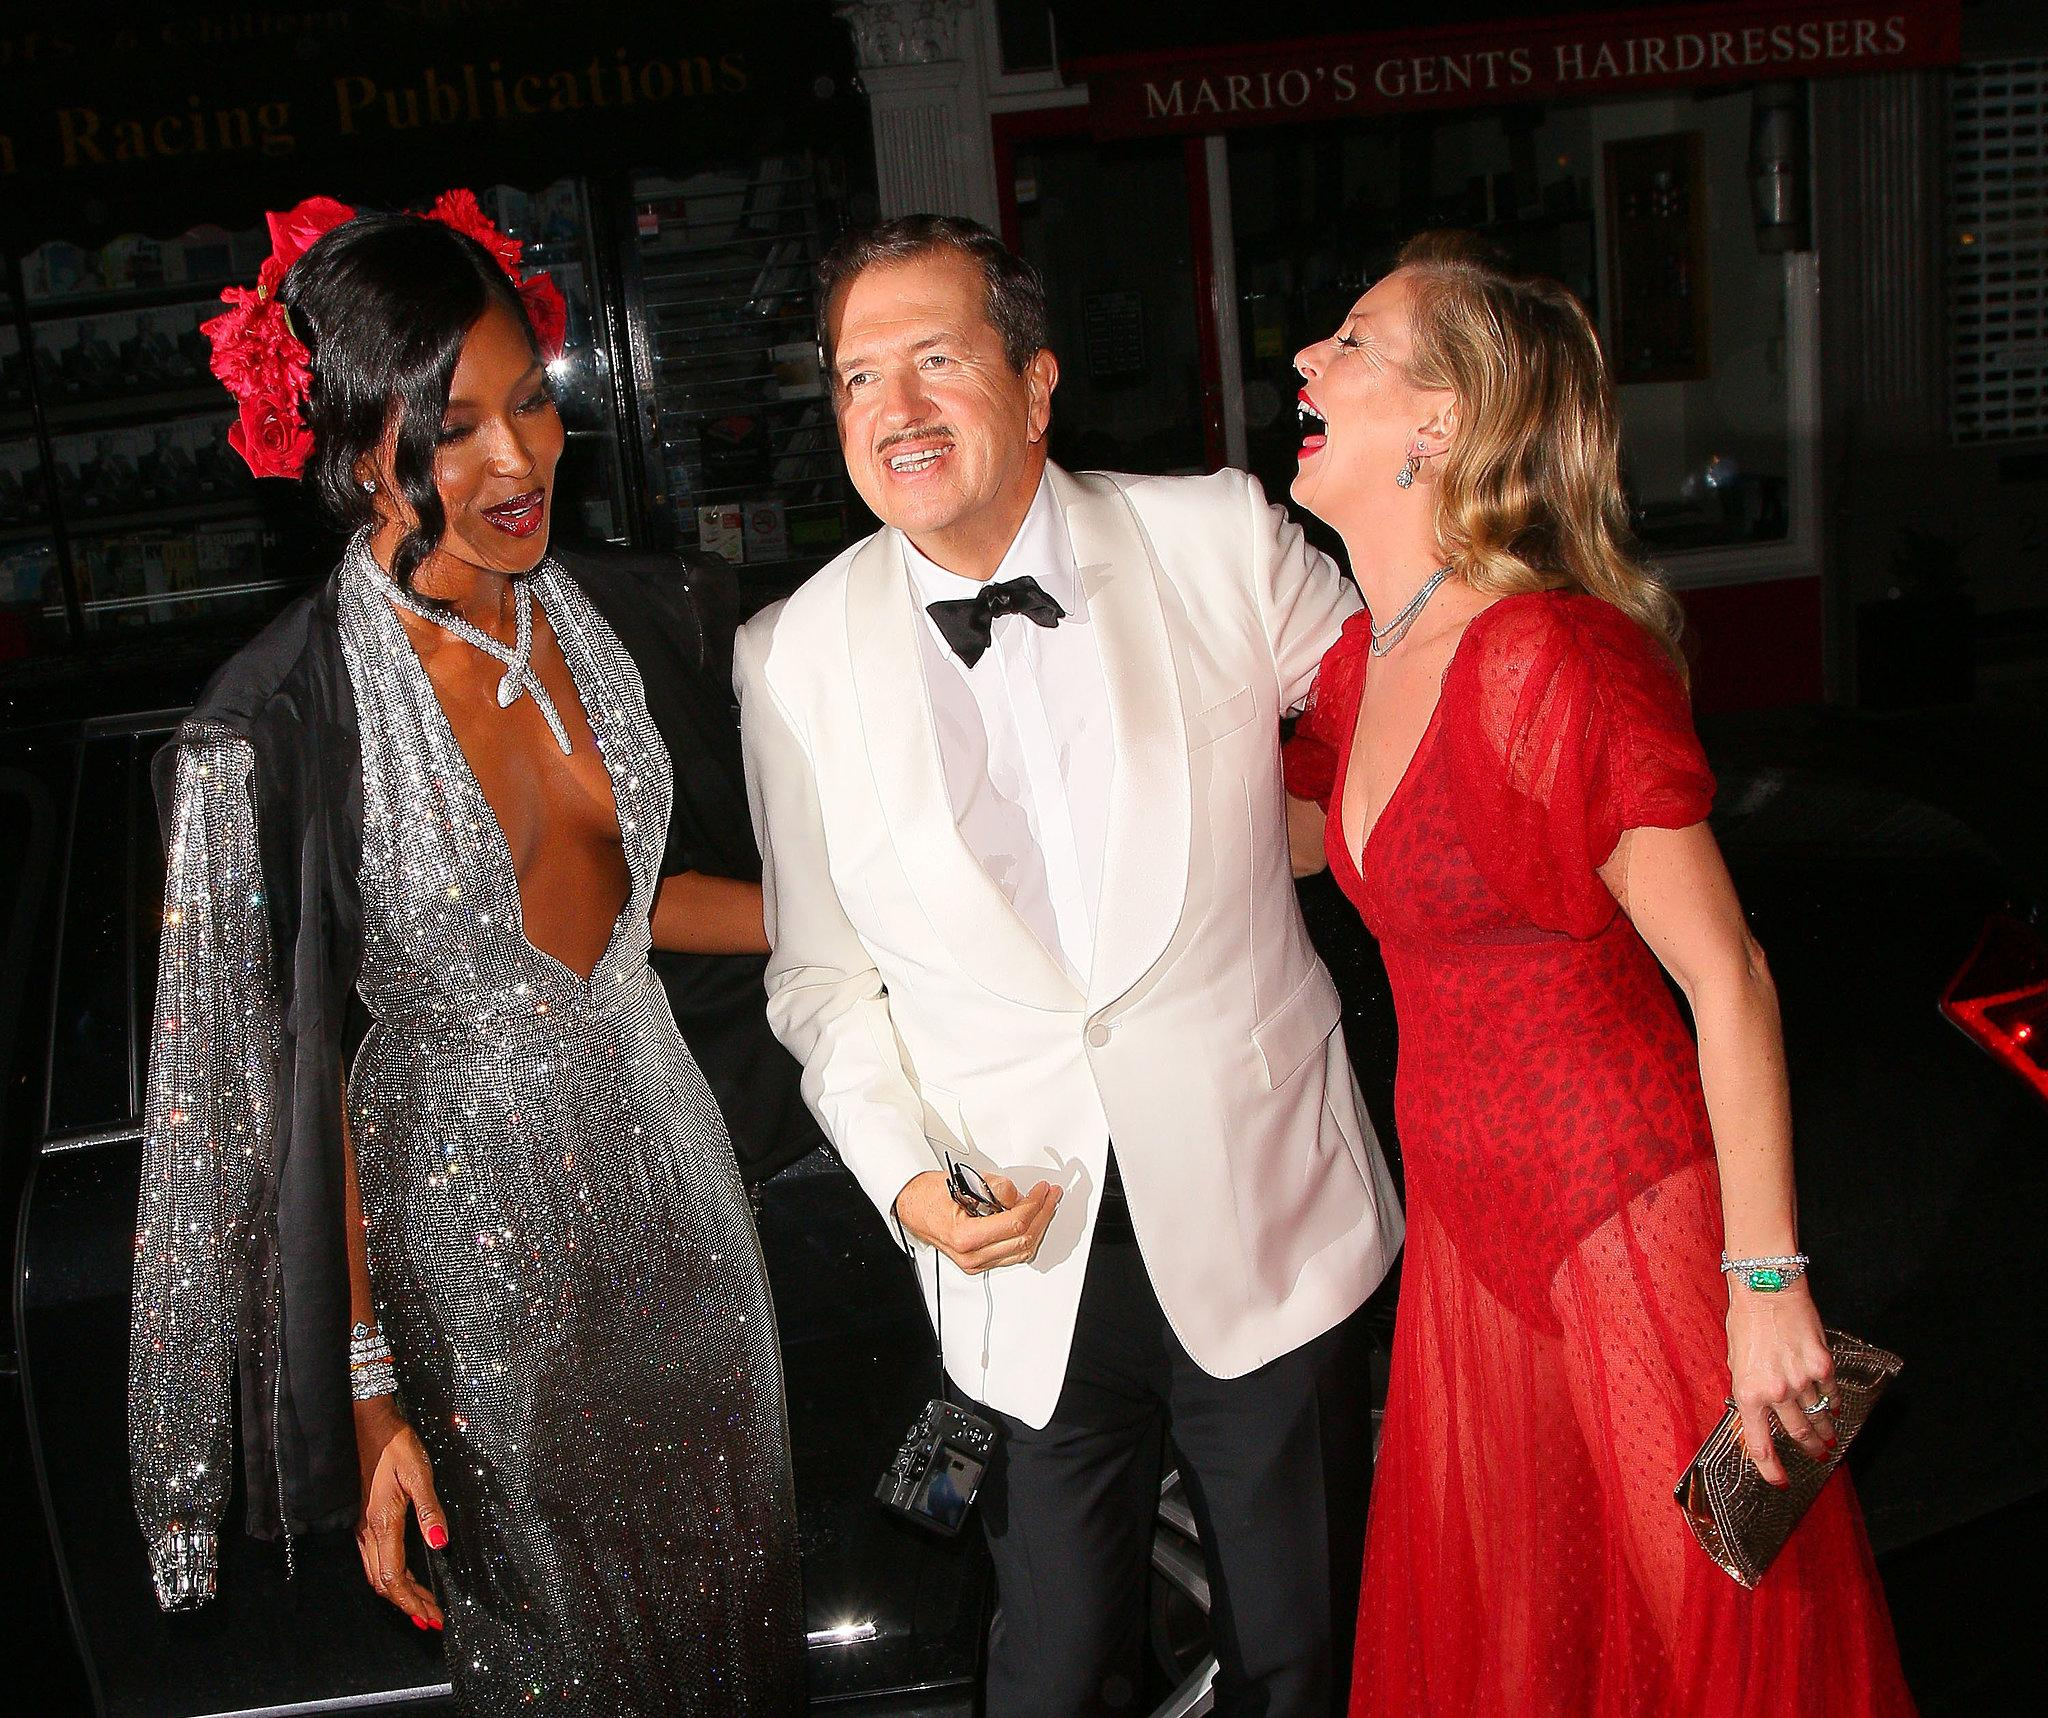 Get an inside peek at how the fashion elite partied down with @mariotestino last night: http://t.co/oRx5uVwdHG http://t.co/XVzWloMAh1